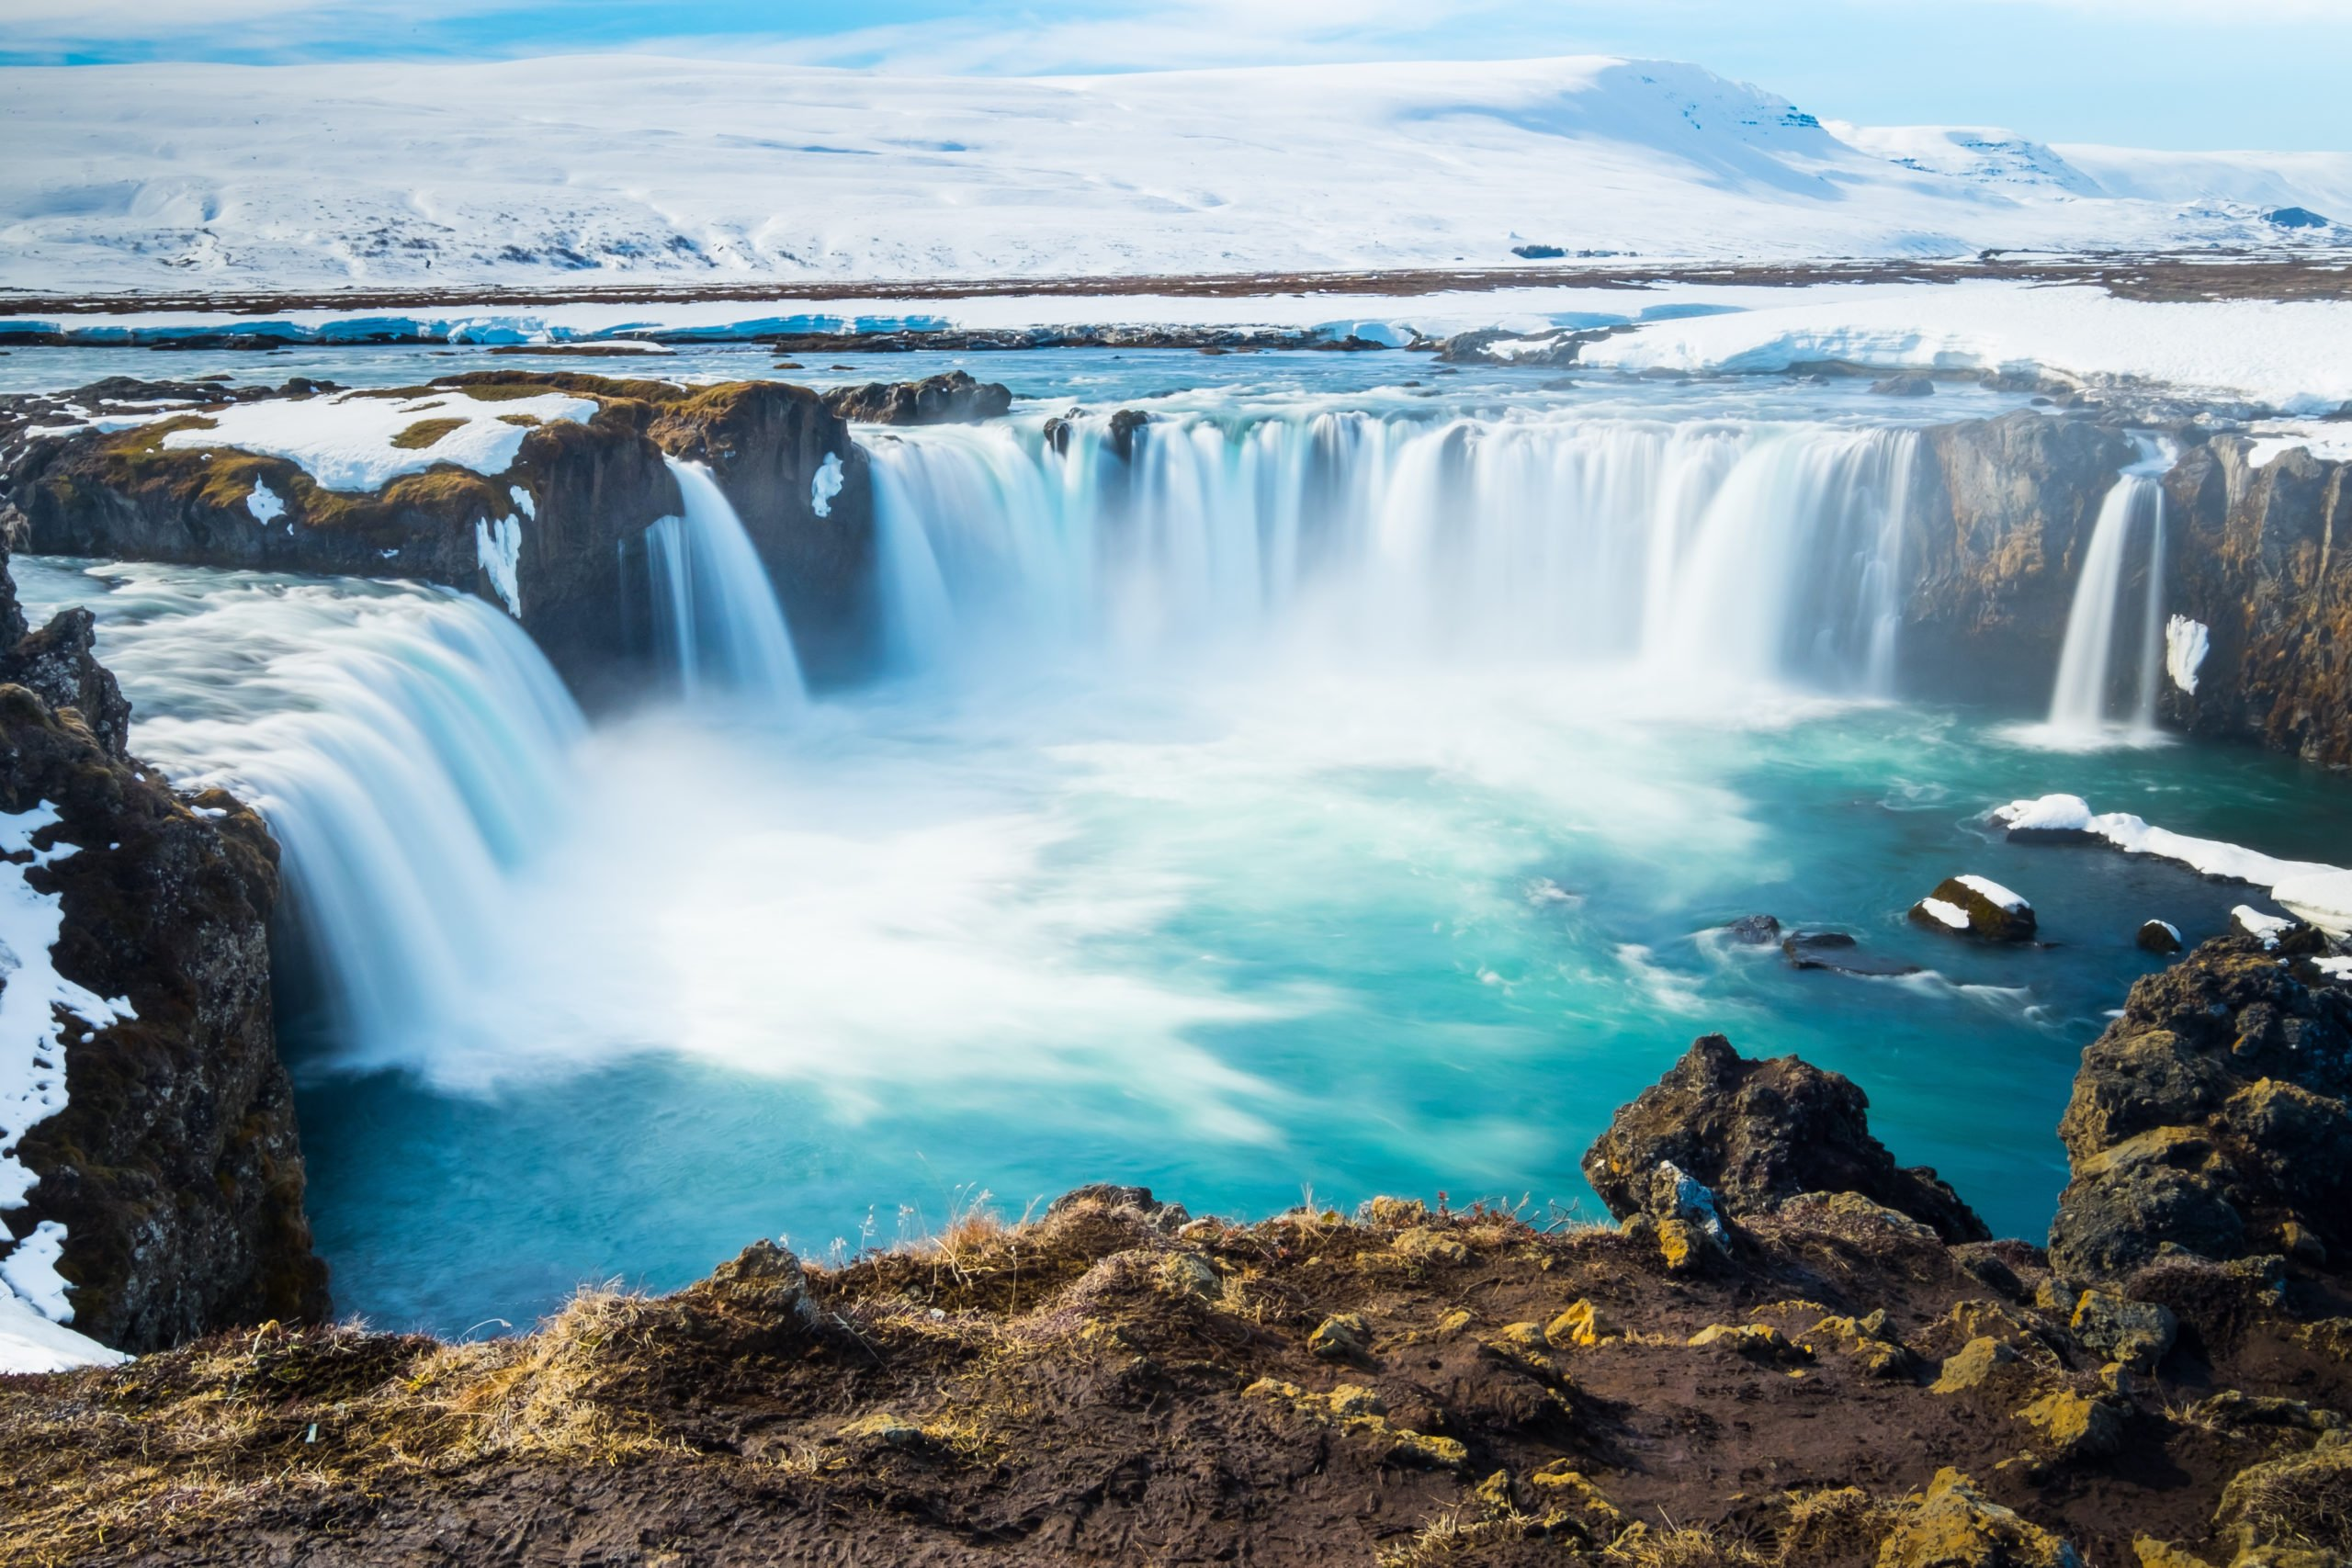 Visit The Gullfoss Waterfall In Our Golden Circle And Horse Riding Tour